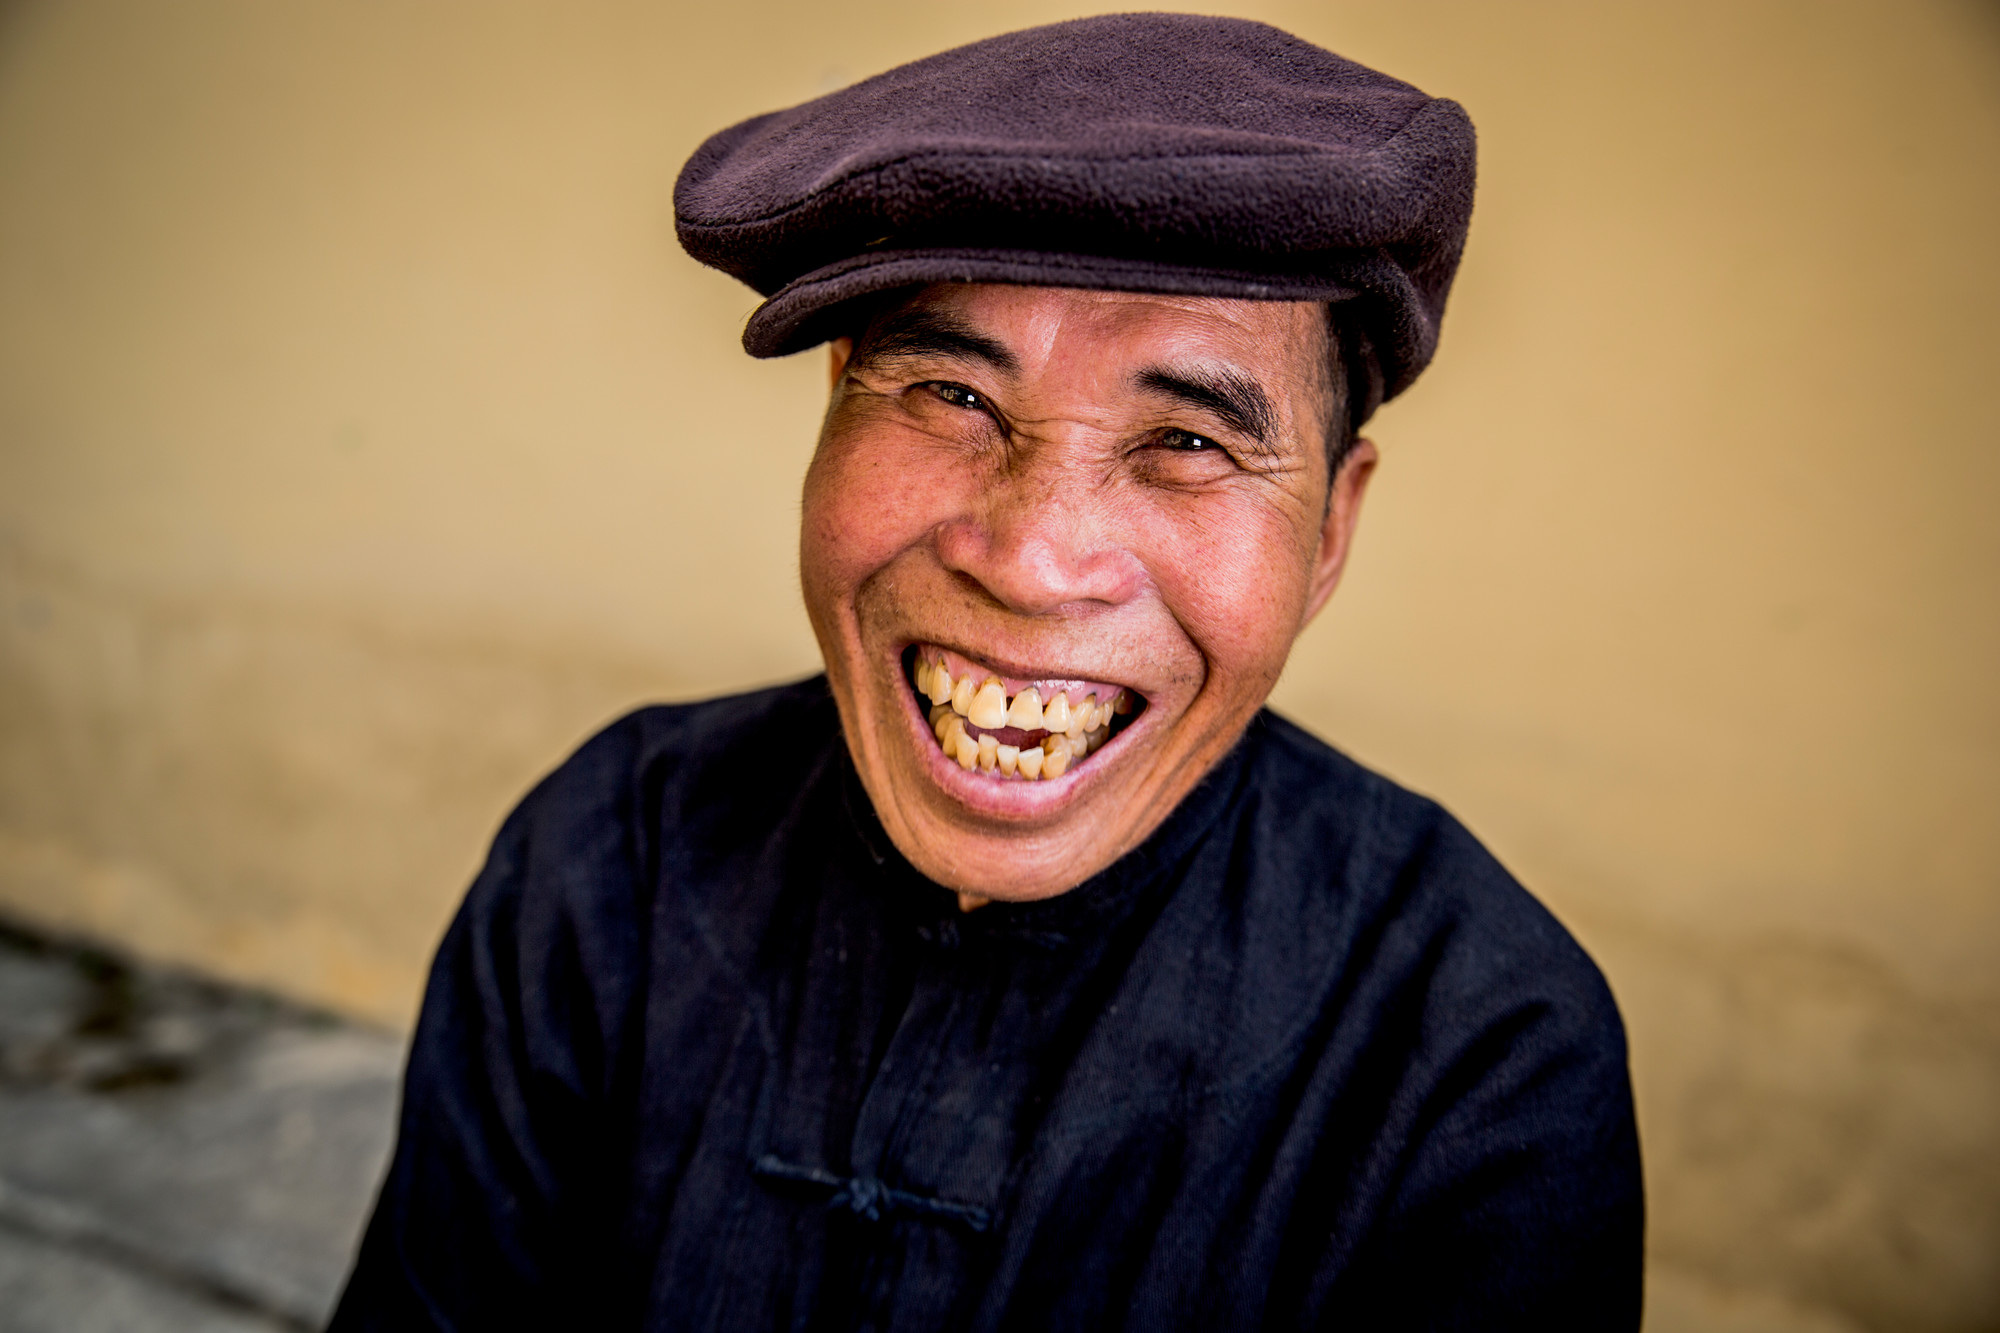 Khut wearing a hat and smiling